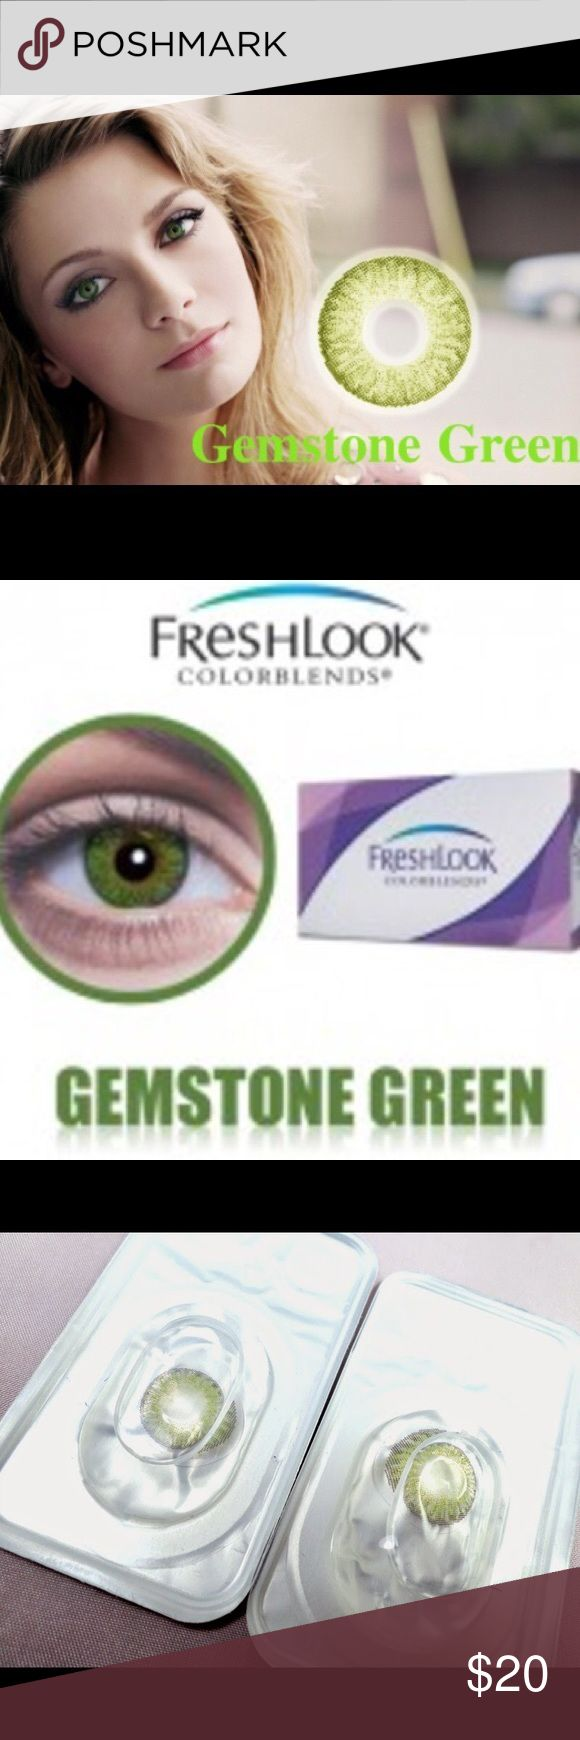 2 Boxes-2 pair Freshlooks Gemstone Green Contacts 2 pair Freshlooks Blended Colored Contacts  You may purchase this listing and choose your 2 colors below if you'd like different colors. All colors are available for purchase Duration: Can be used for a year Package: 4 pcs (2 pair) Non Prescription    These contacts provide a unique 3-in-1 technology, blending three colors into one to create the natural eye color. Colors Available include Blue, Turquoise, True Sapphire, Green, Brown, Honey…